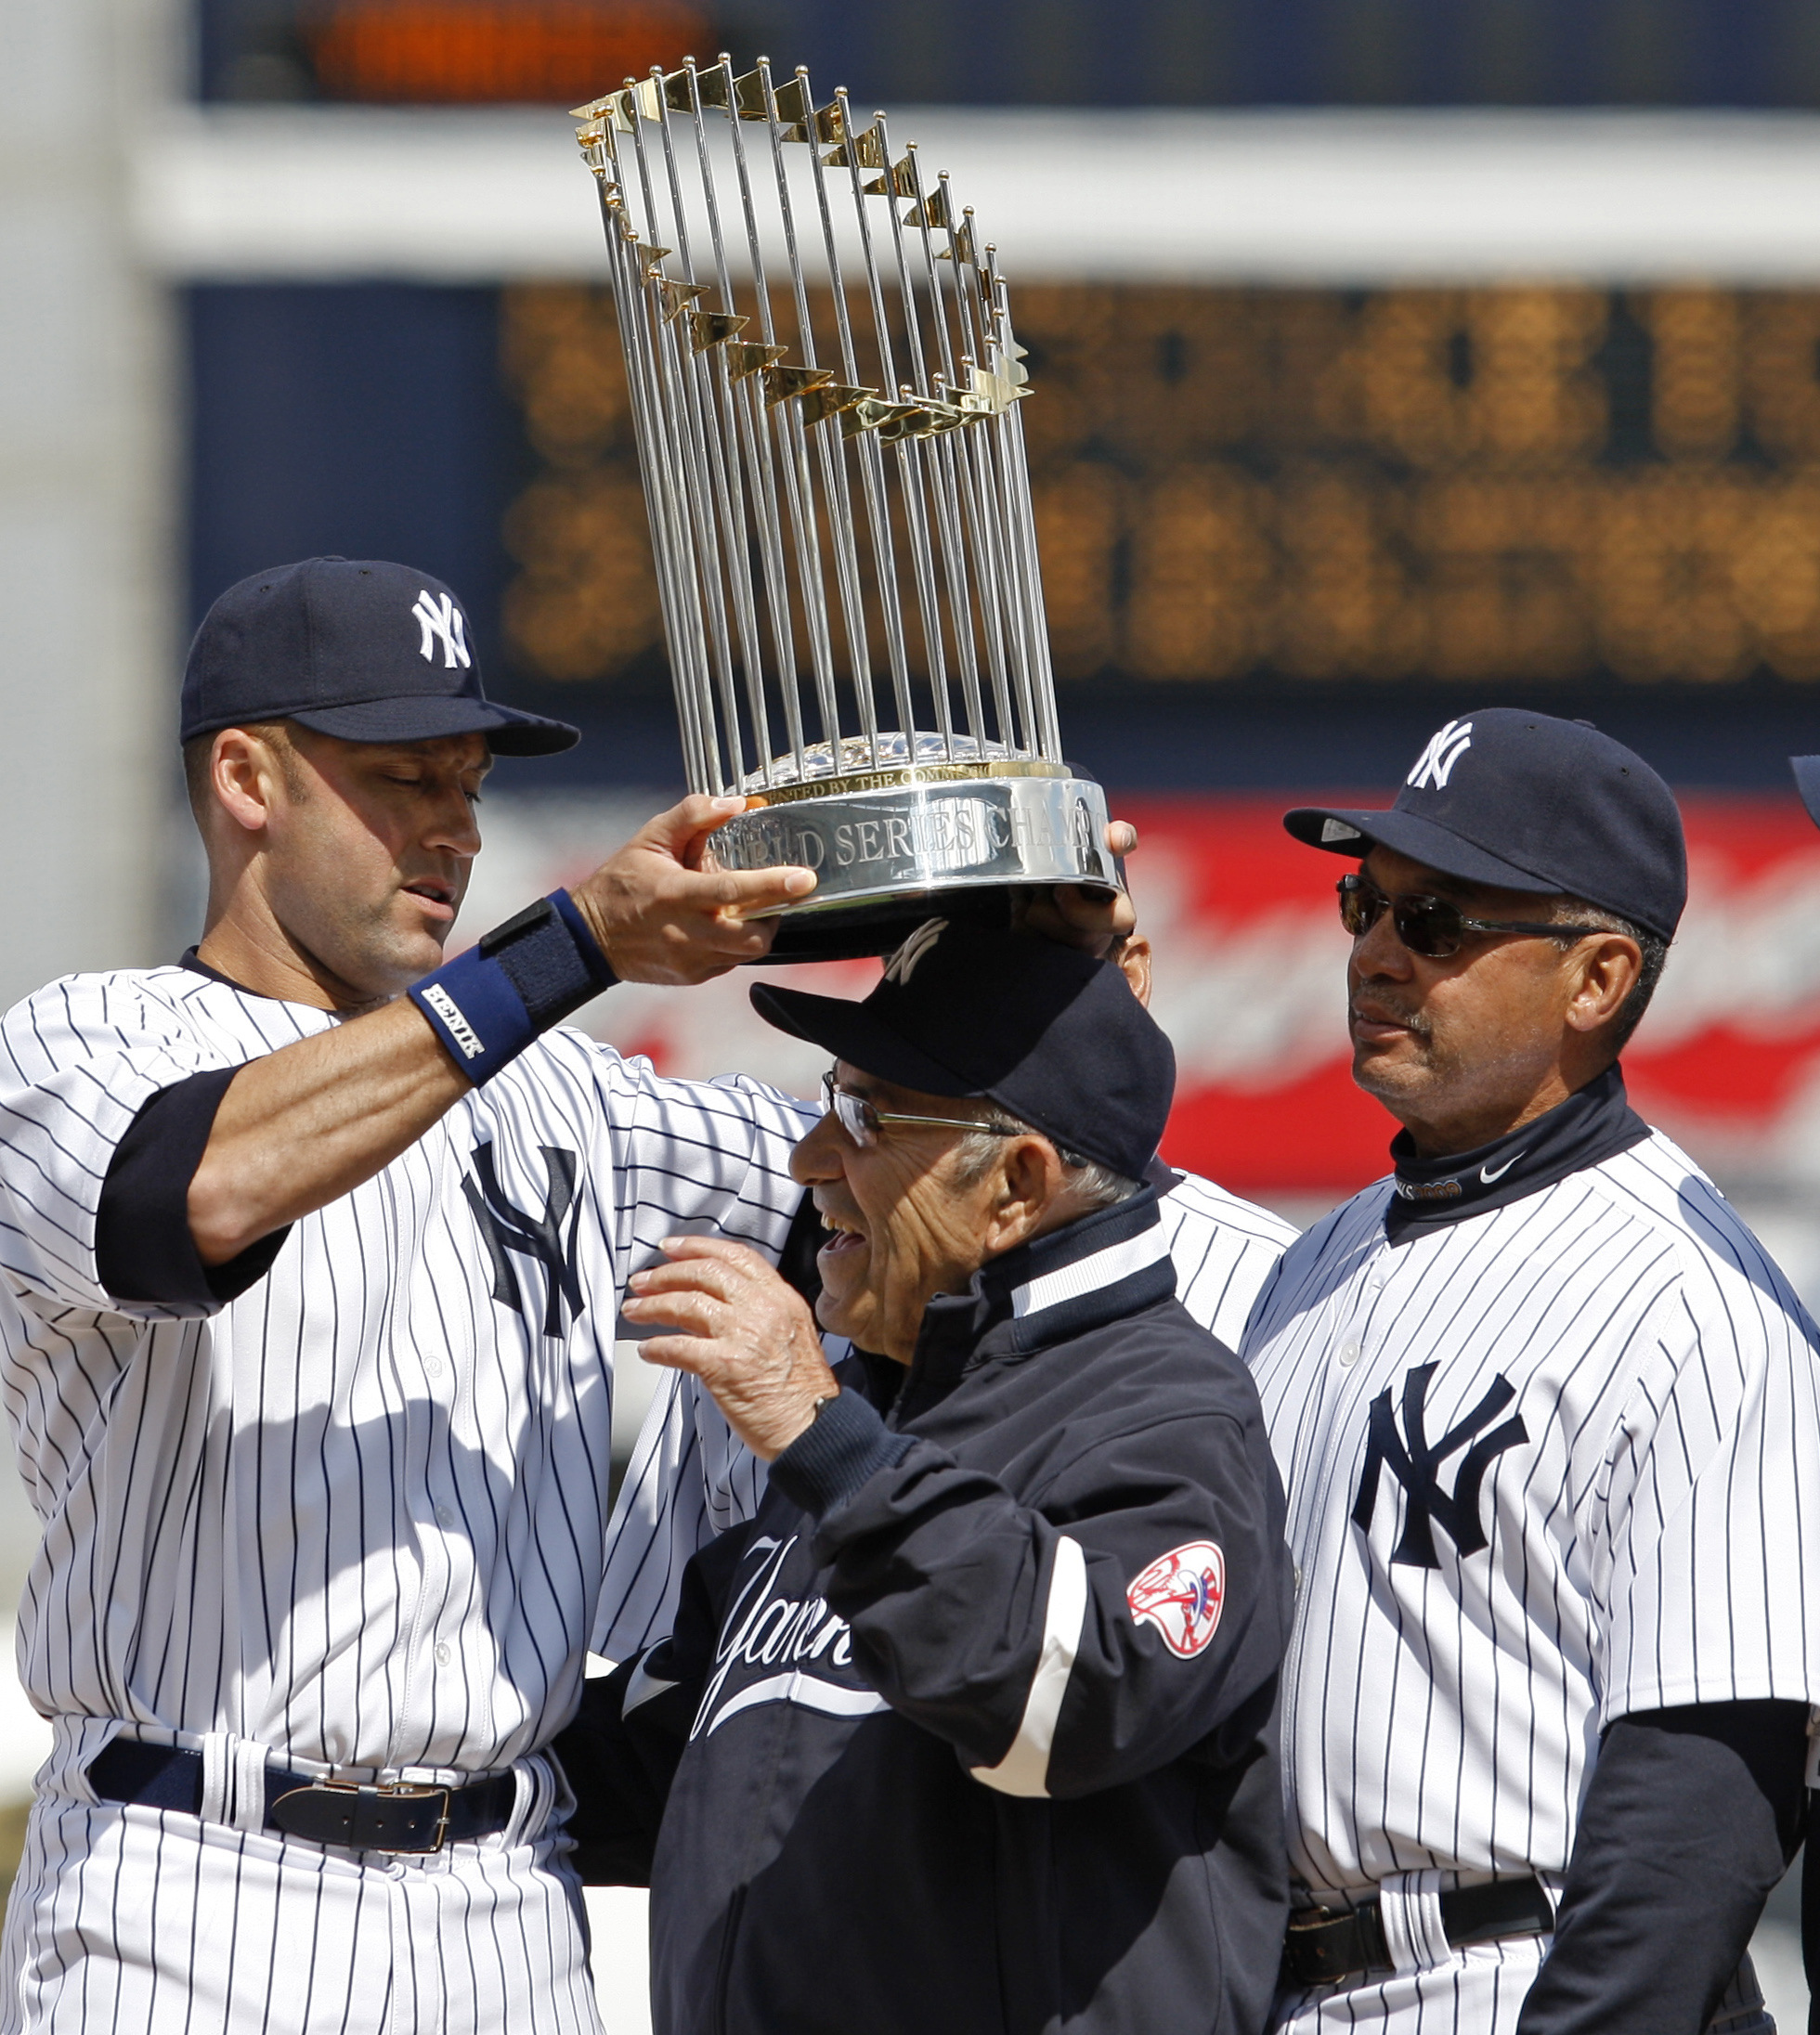 New York Yankees captain Derek Jeter, left, balances the 2009 World Series trophy atop Yogi Berra's head as Hall of Famer Reggie Jackson watches during pregame ceremonies prior to the during Yankees home opener spring training baseball game against the Pittsburgh Pirates at Steinbrenner Field in Tampa, Fla., Wednesday, March 3, 2010. (AP Photo/Kathy Willens)